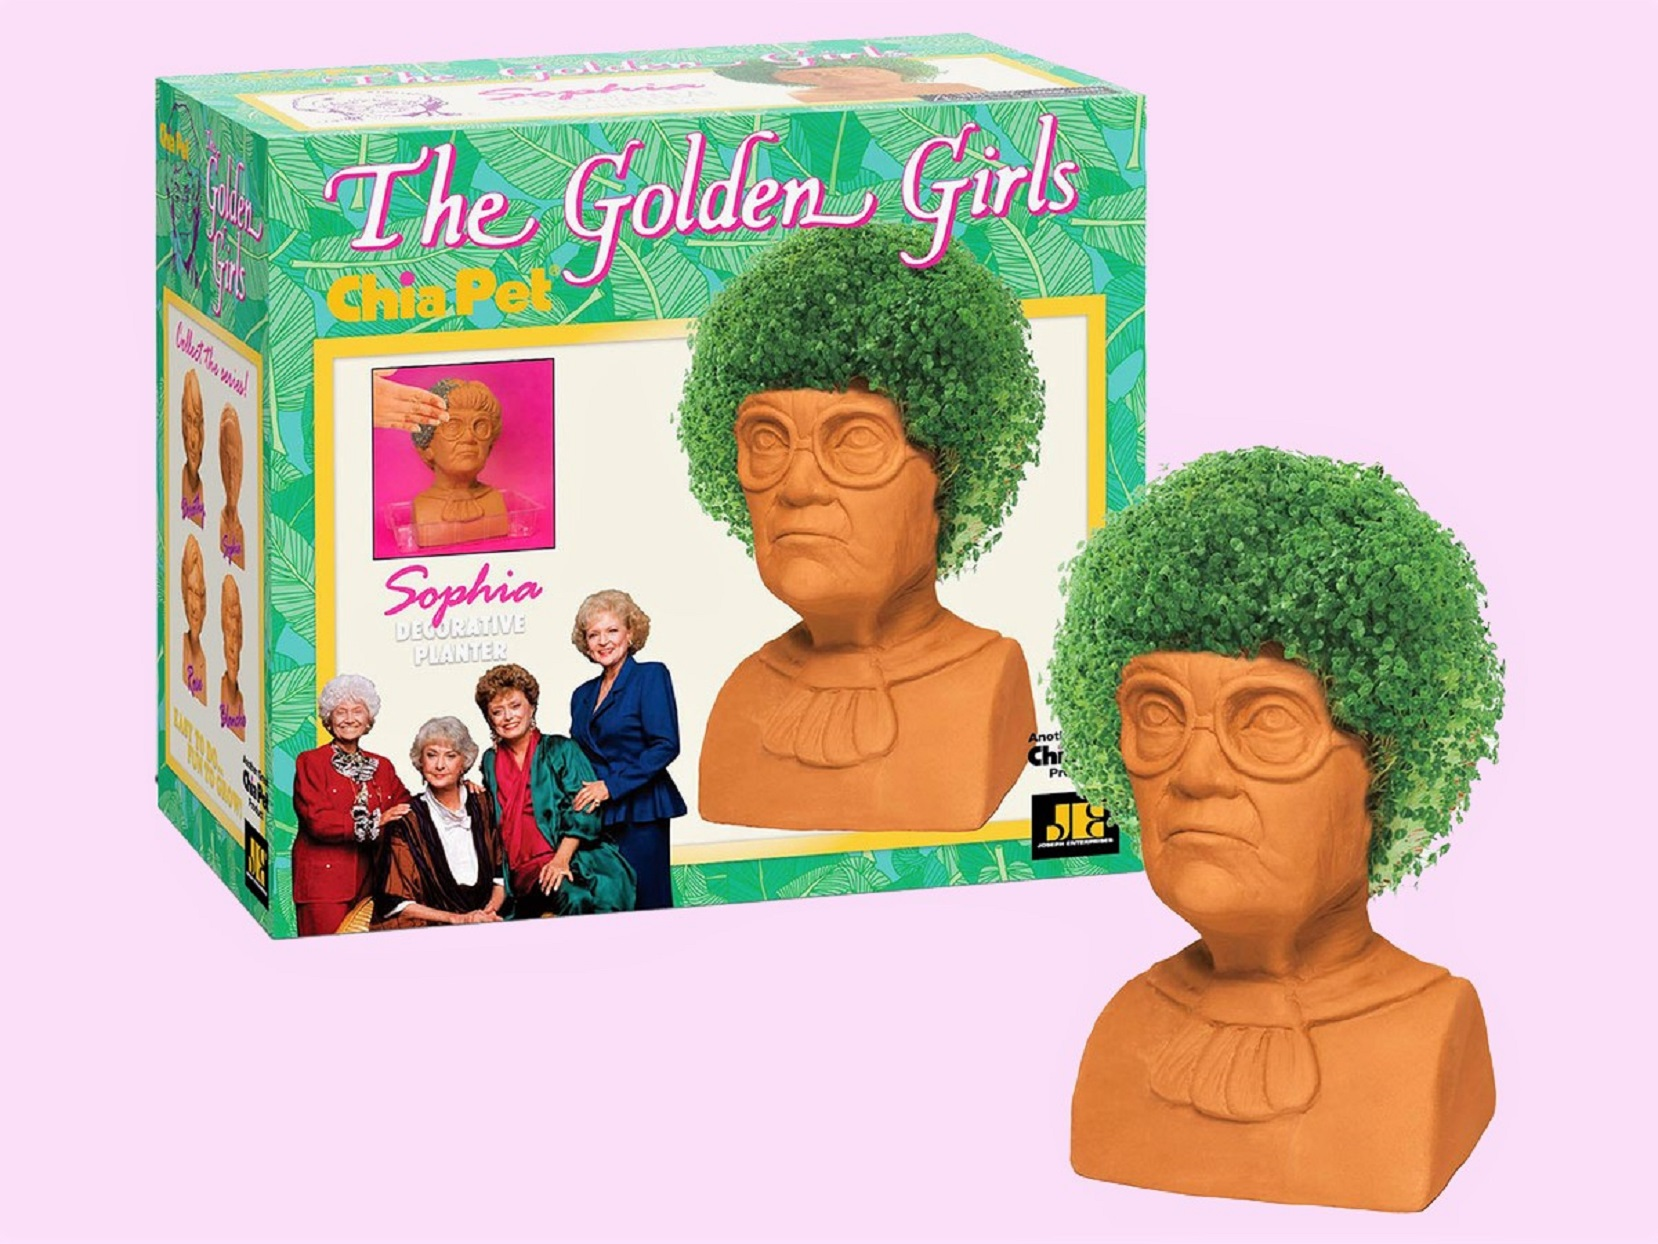 The Golden Girls Chia Pet Sophia